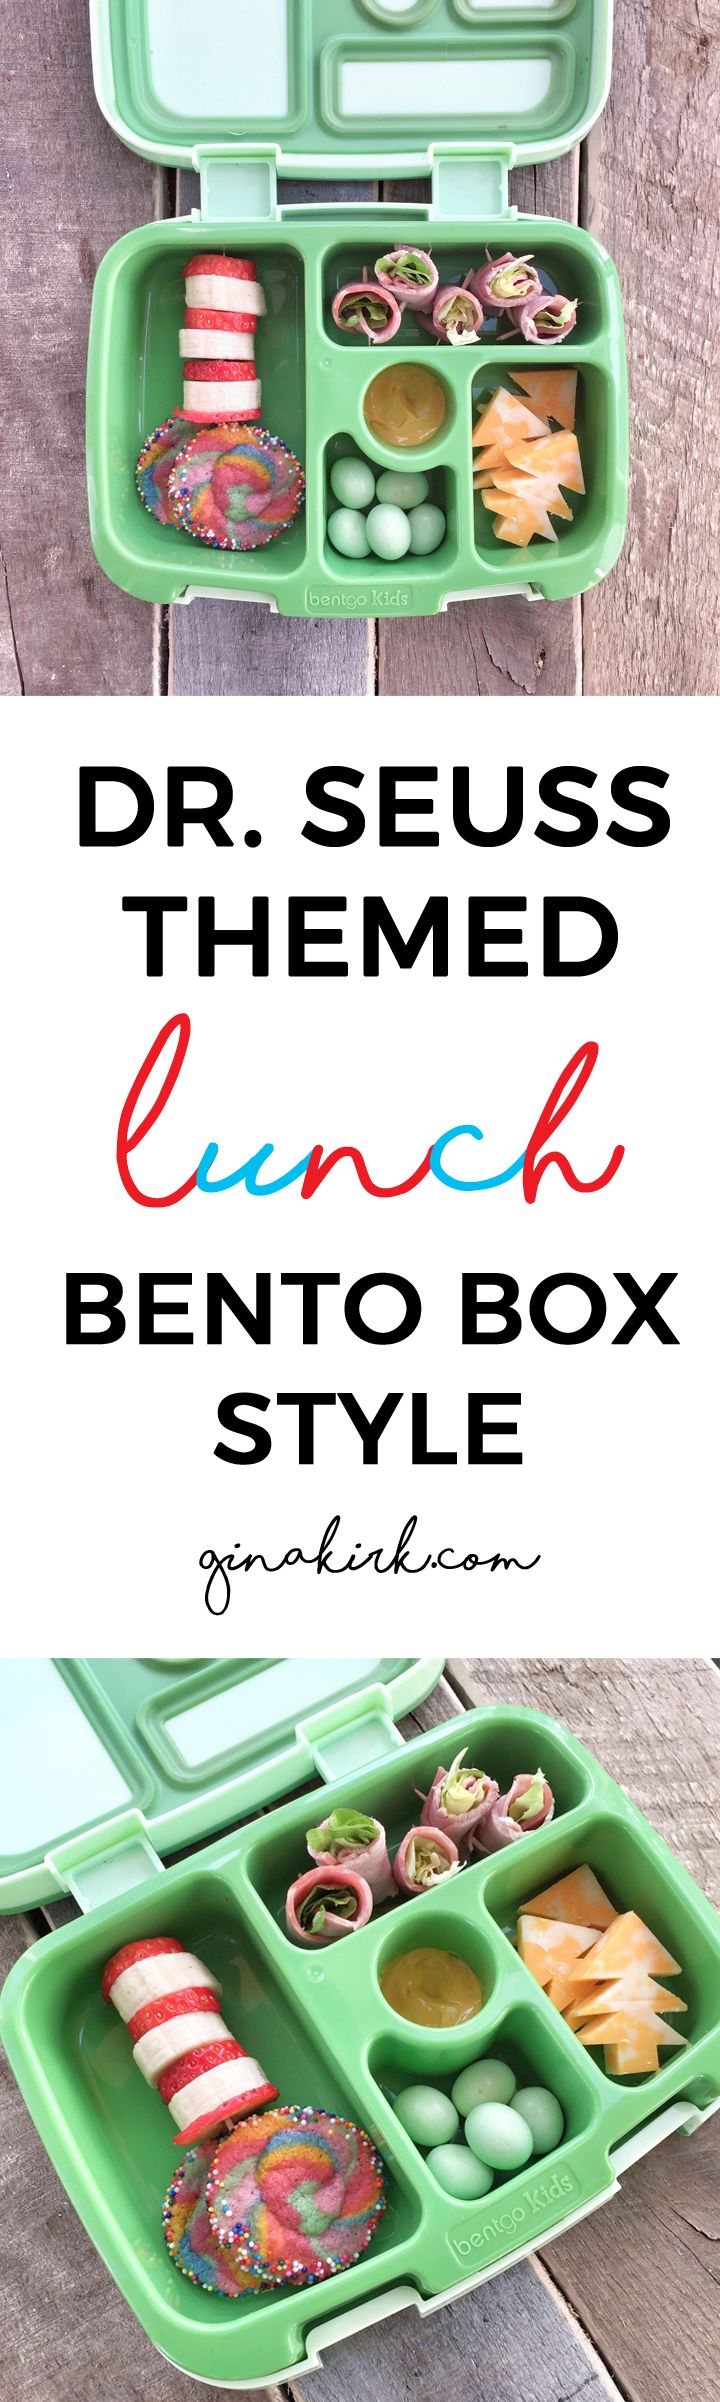 17 best images about bento lunchbox fun on pinterest kid lunches for kids and good lunch ideas. Black Bedroom Furniture Sets. Home Design Ideas